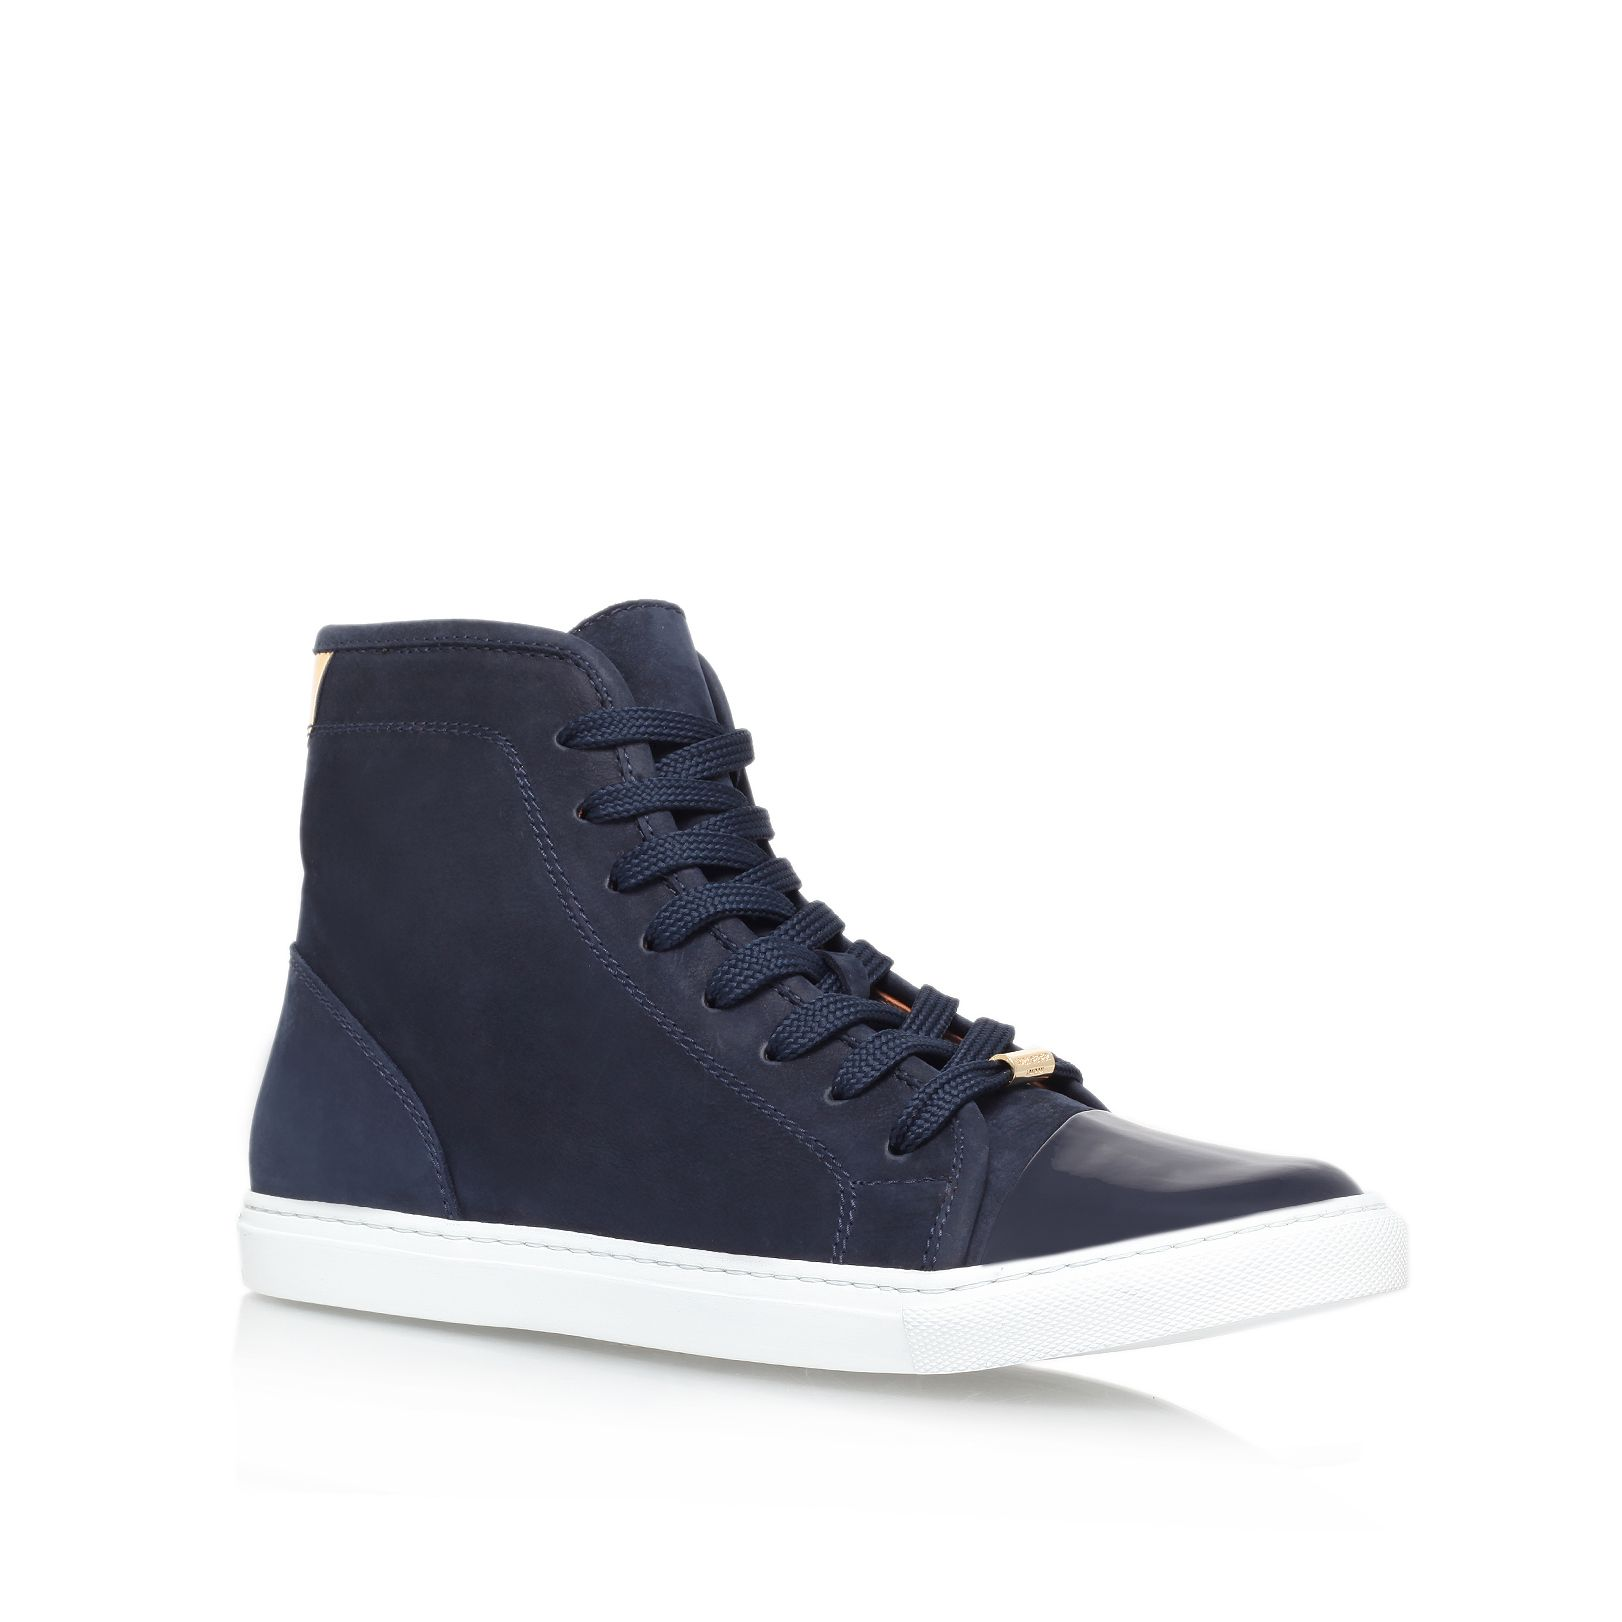 Leemo lace up trainers